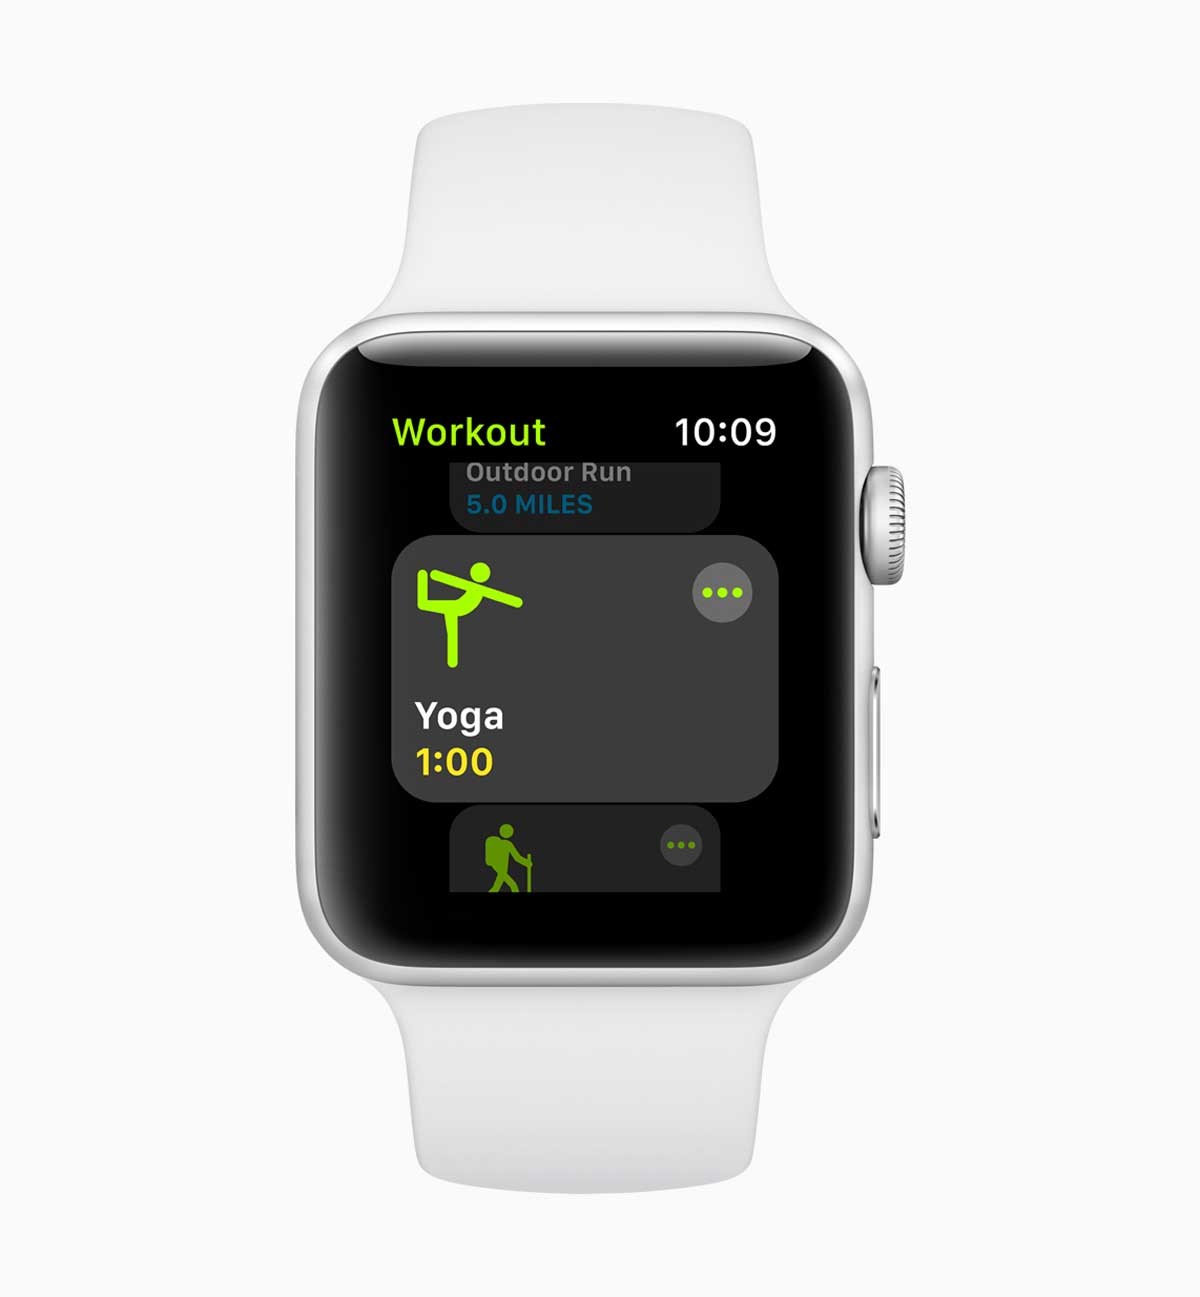 Yoga Apple Watch Tracking with watchos5